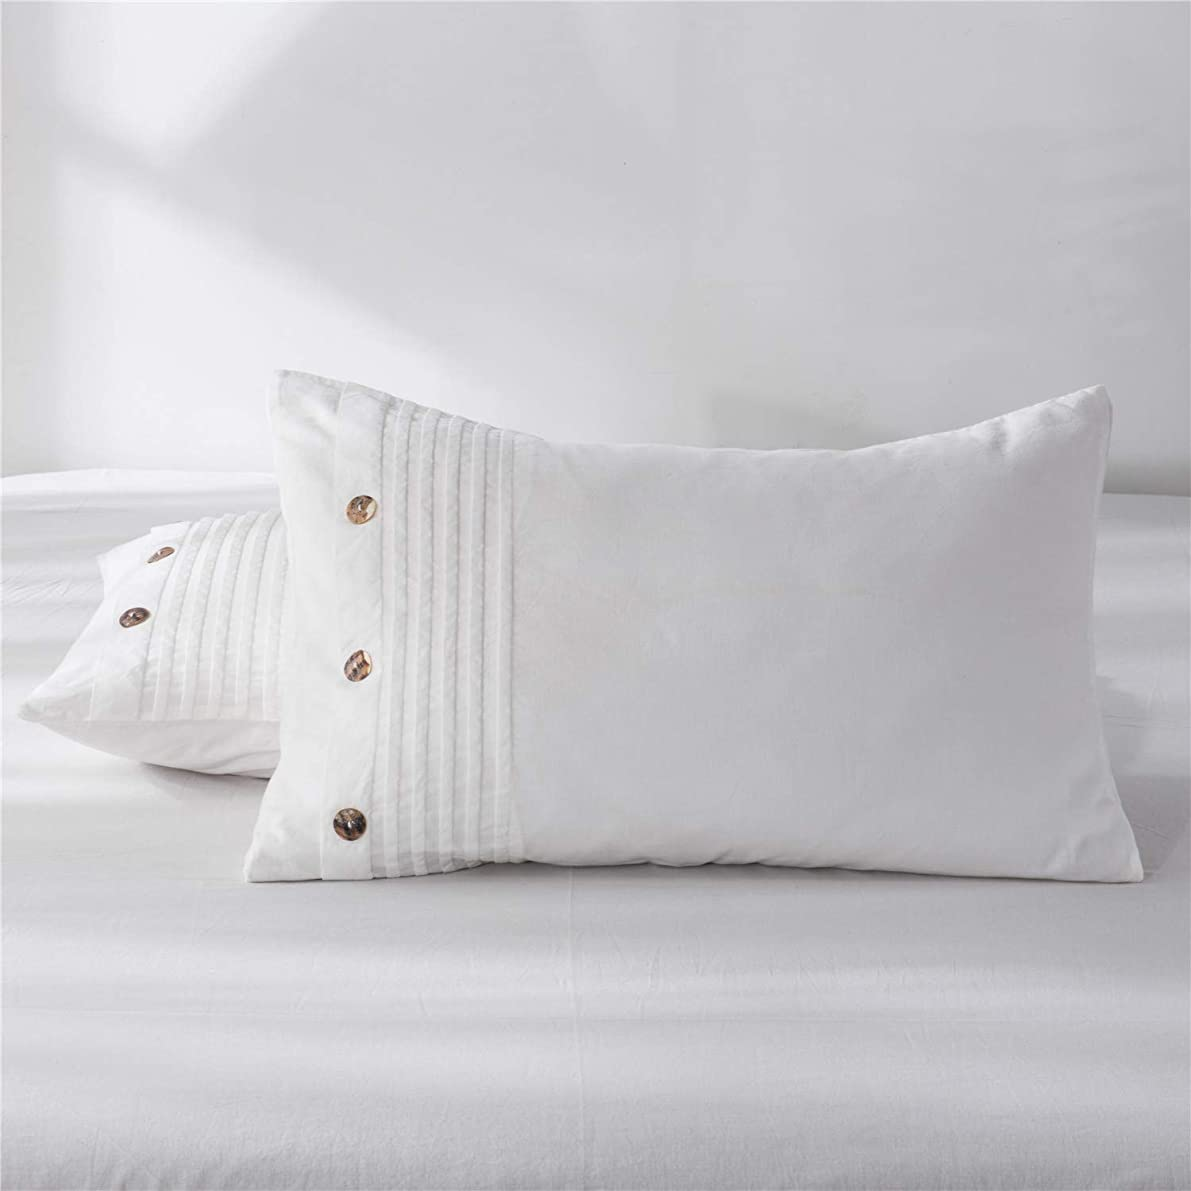 Three Baby 100% Washed Cotton Pillow Cases White Standard Pillowcase 1 Piece Pure Natural 100% Cotton Pillows for Sleeping Soft Bed Pillow Cover White